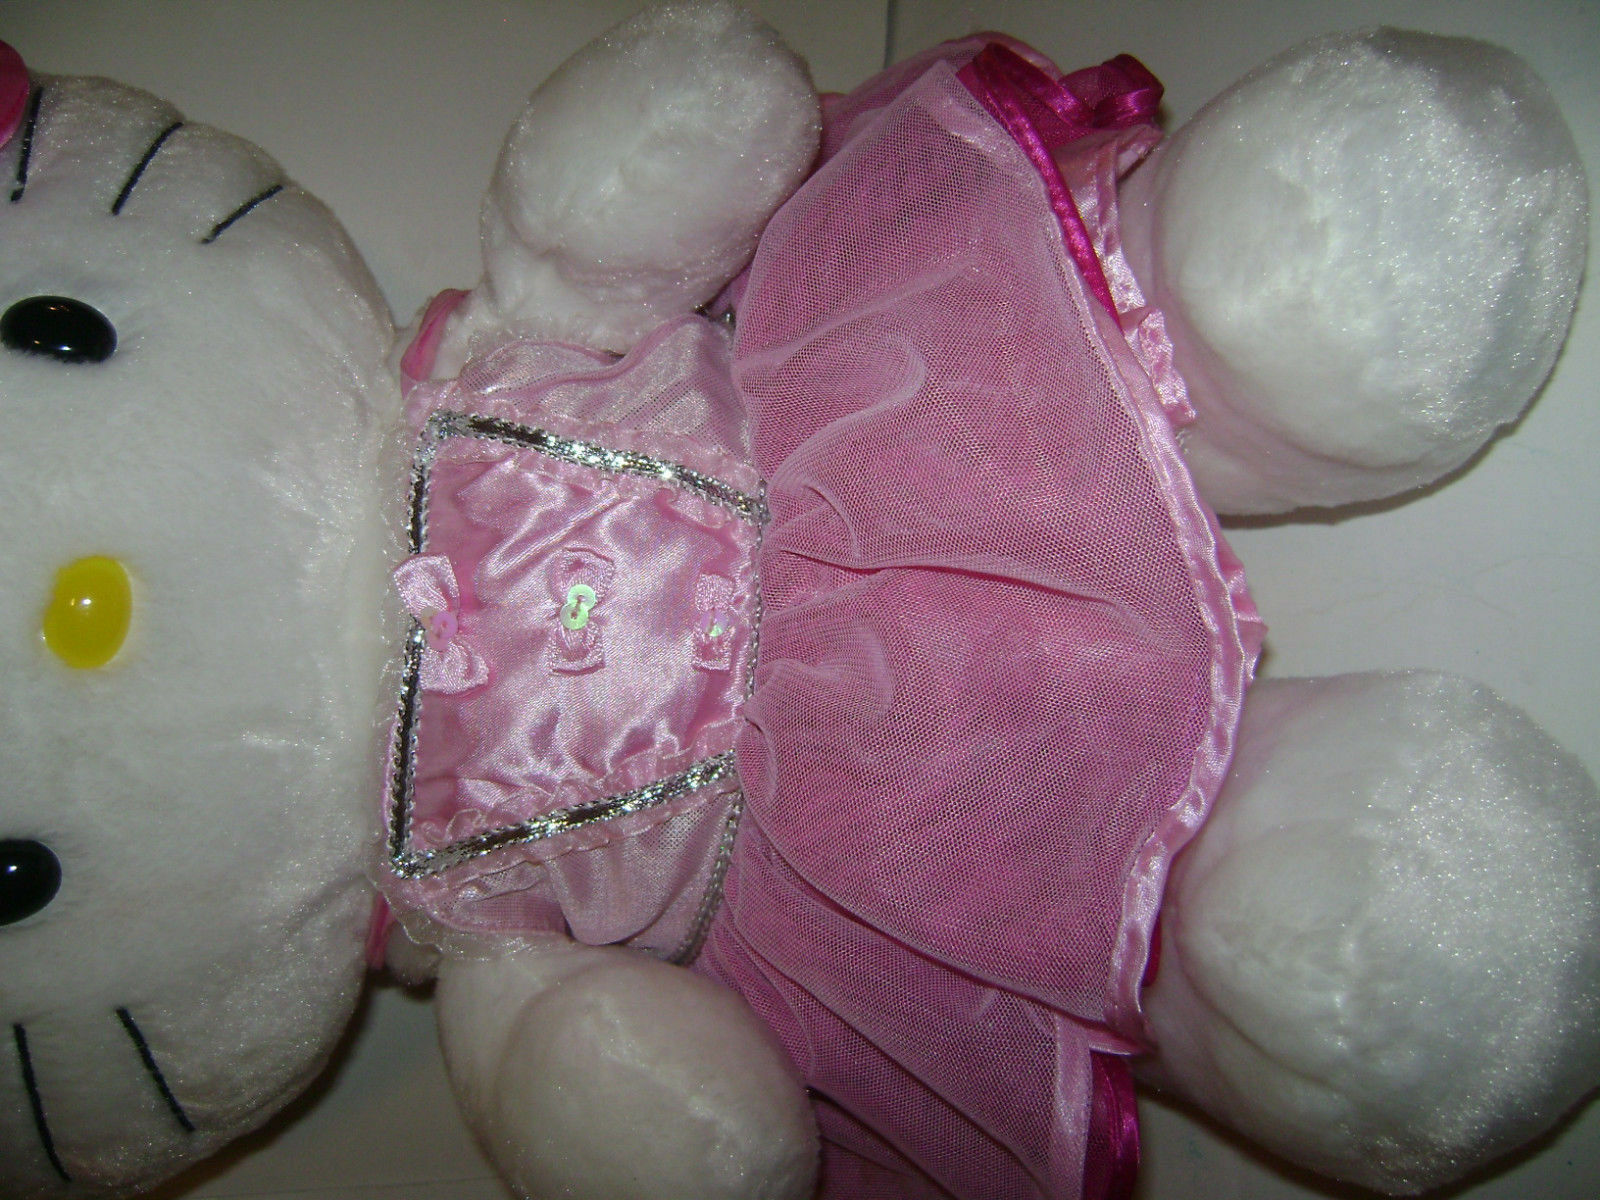 BUILD BUILD BUILD A BEAR bianca HELLO KITTY W  BOW 19  PLUSH STUFFED TOY HEART DRESSED CUTE 12a9fc